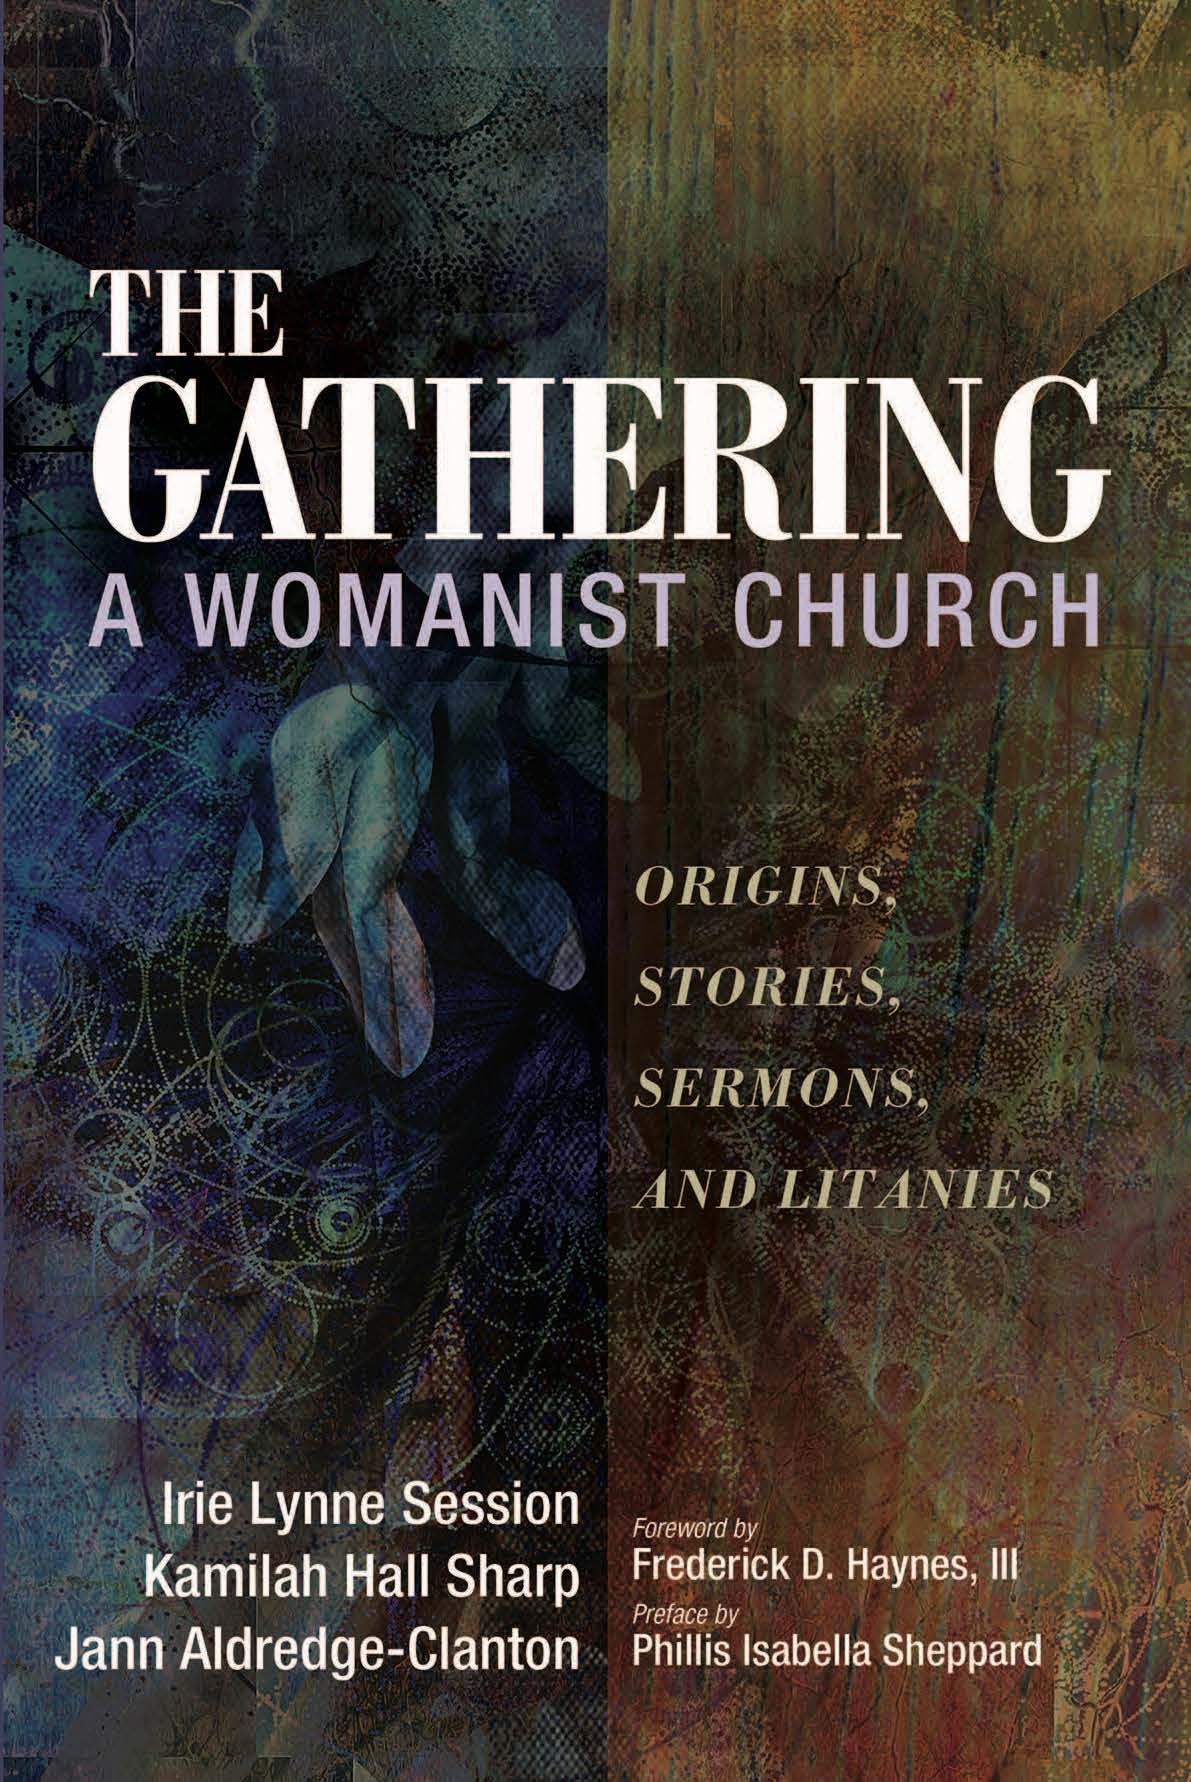 The Gathering, A Womanist Church: Origins, Stories, Sermons, and Litanies